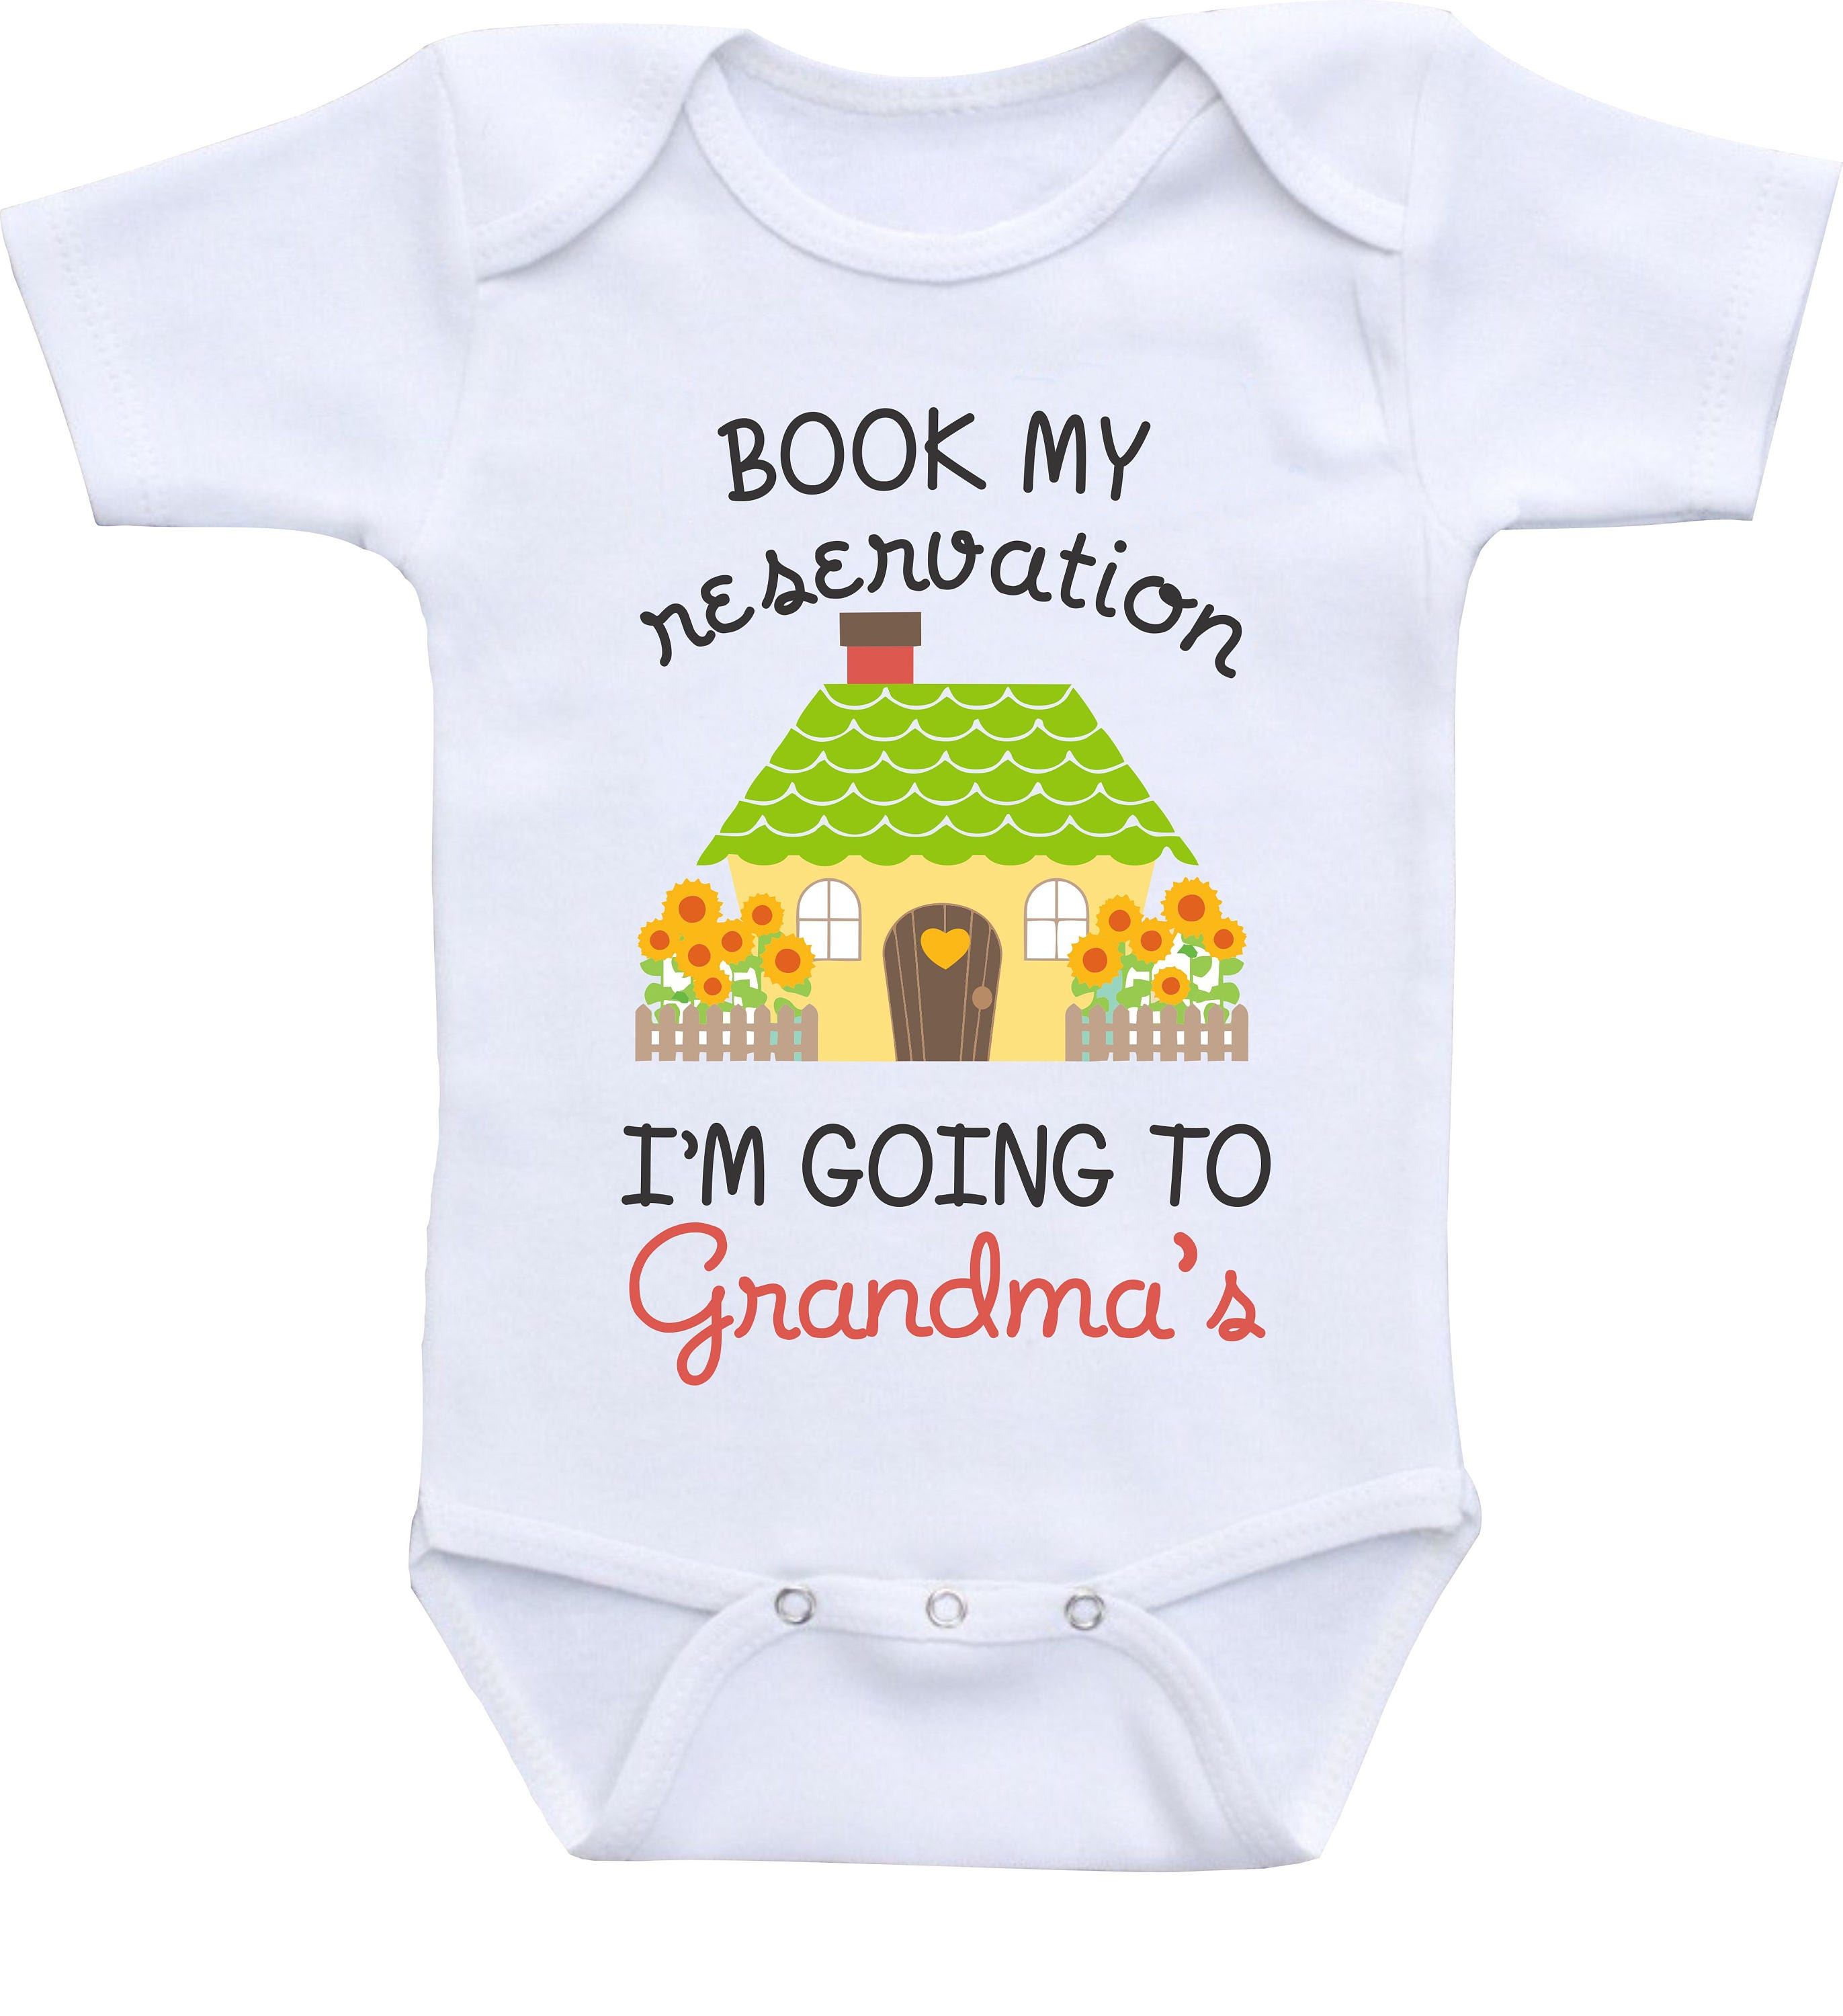 Baby Boys Clothing Boys Clothing Clothing